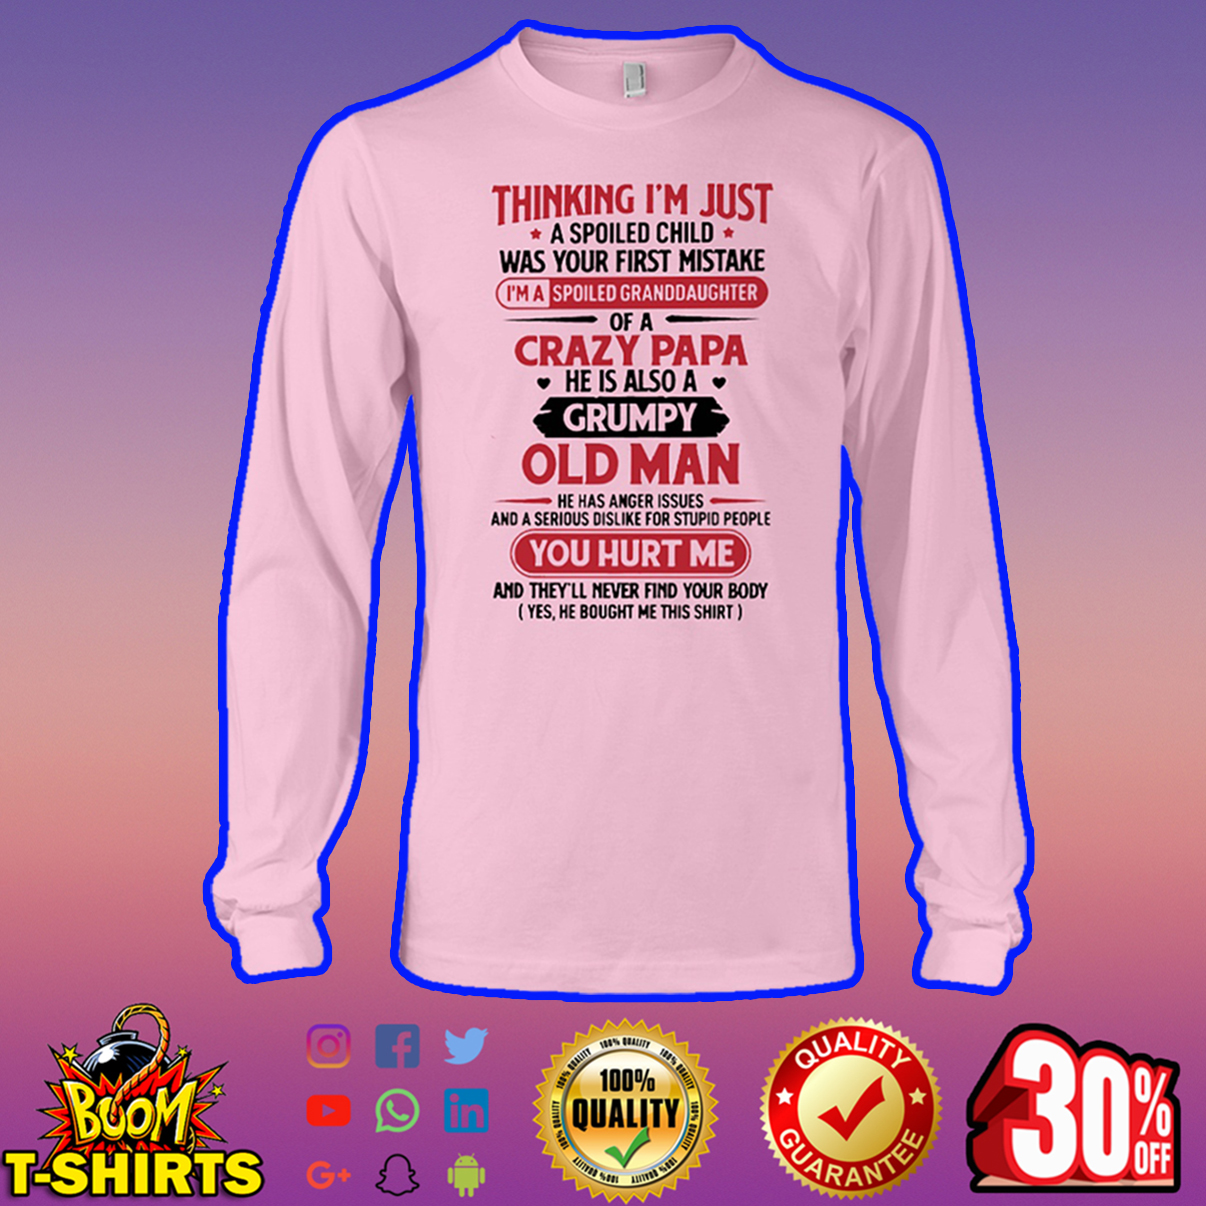 A spoiled child I'm a spoiled granddaughter of a crazy papa long sleeve tee